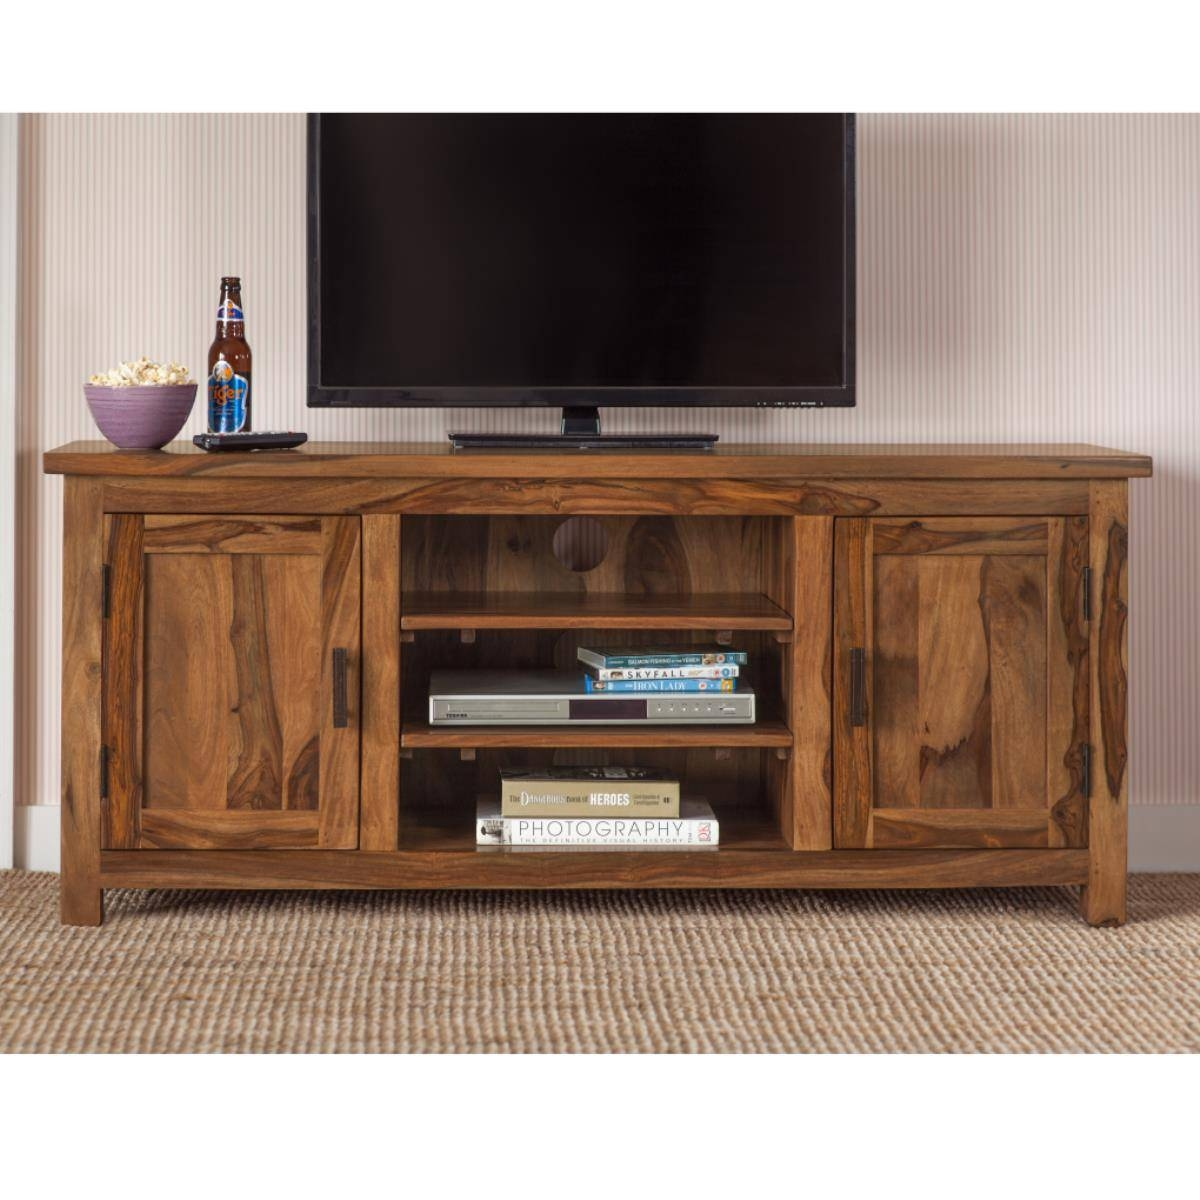 Mallani Widescreen Tv Cabinet | Myakka.co.uk for Widescreen Tv Cabinets (Image 8 of 15)